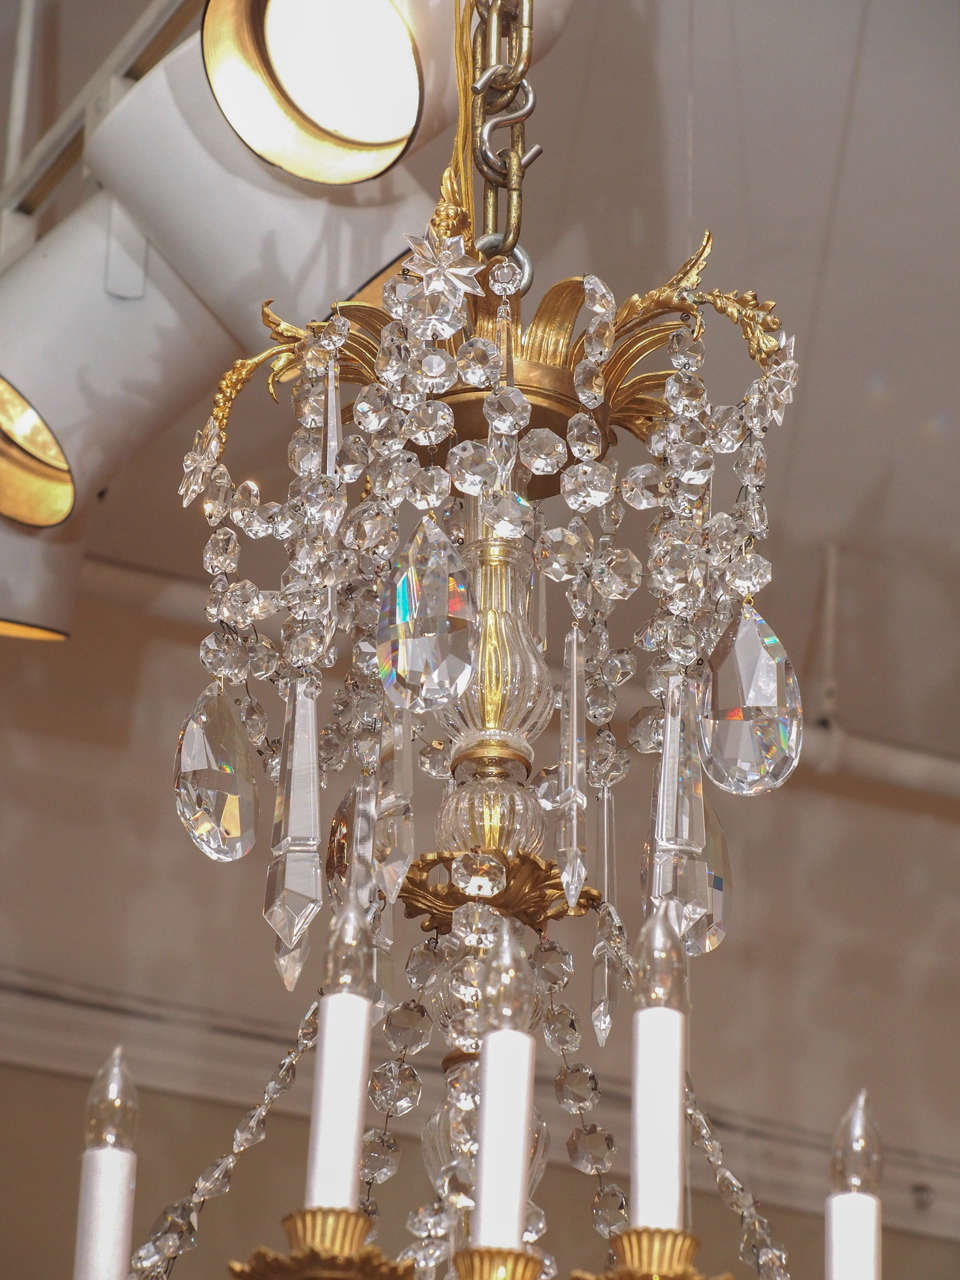 Antique French Baccarat Crystal and Bronze D'ore 24 Light Chandelier circa 1890 In Excellent Condition For Sale In New Orleans, LA